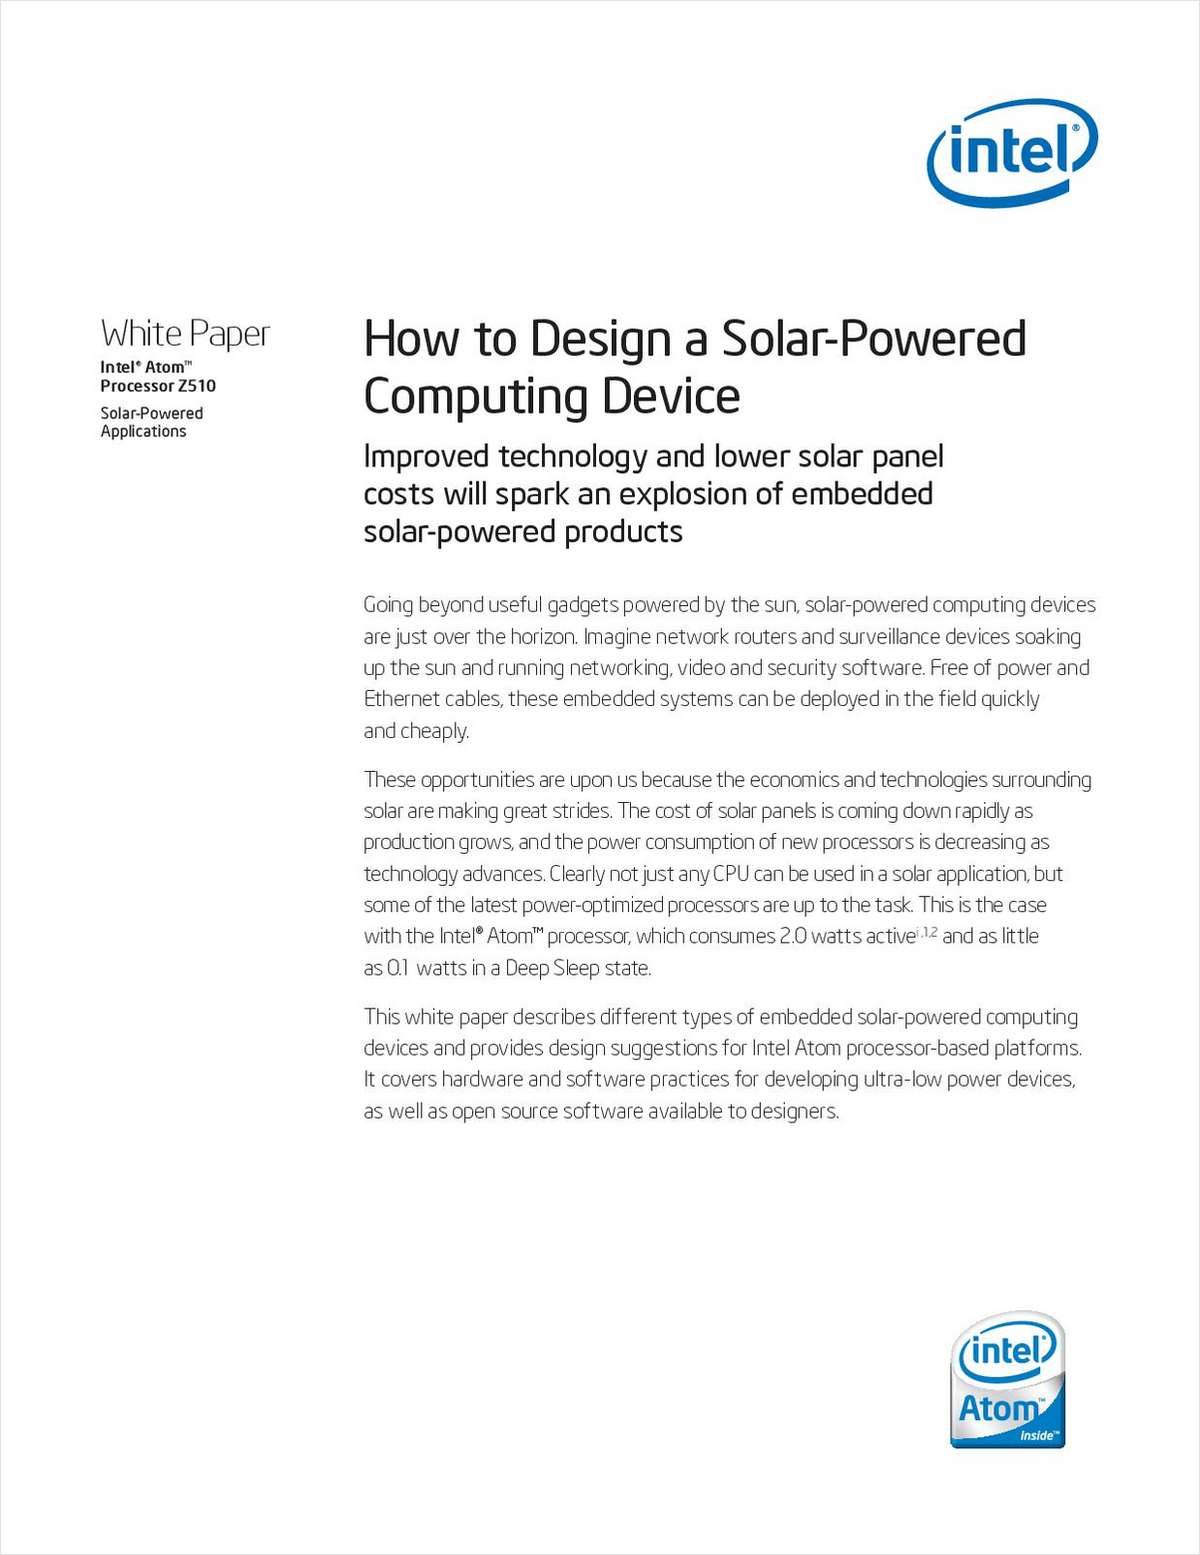 How to Design a Solar-Powered Computing Device